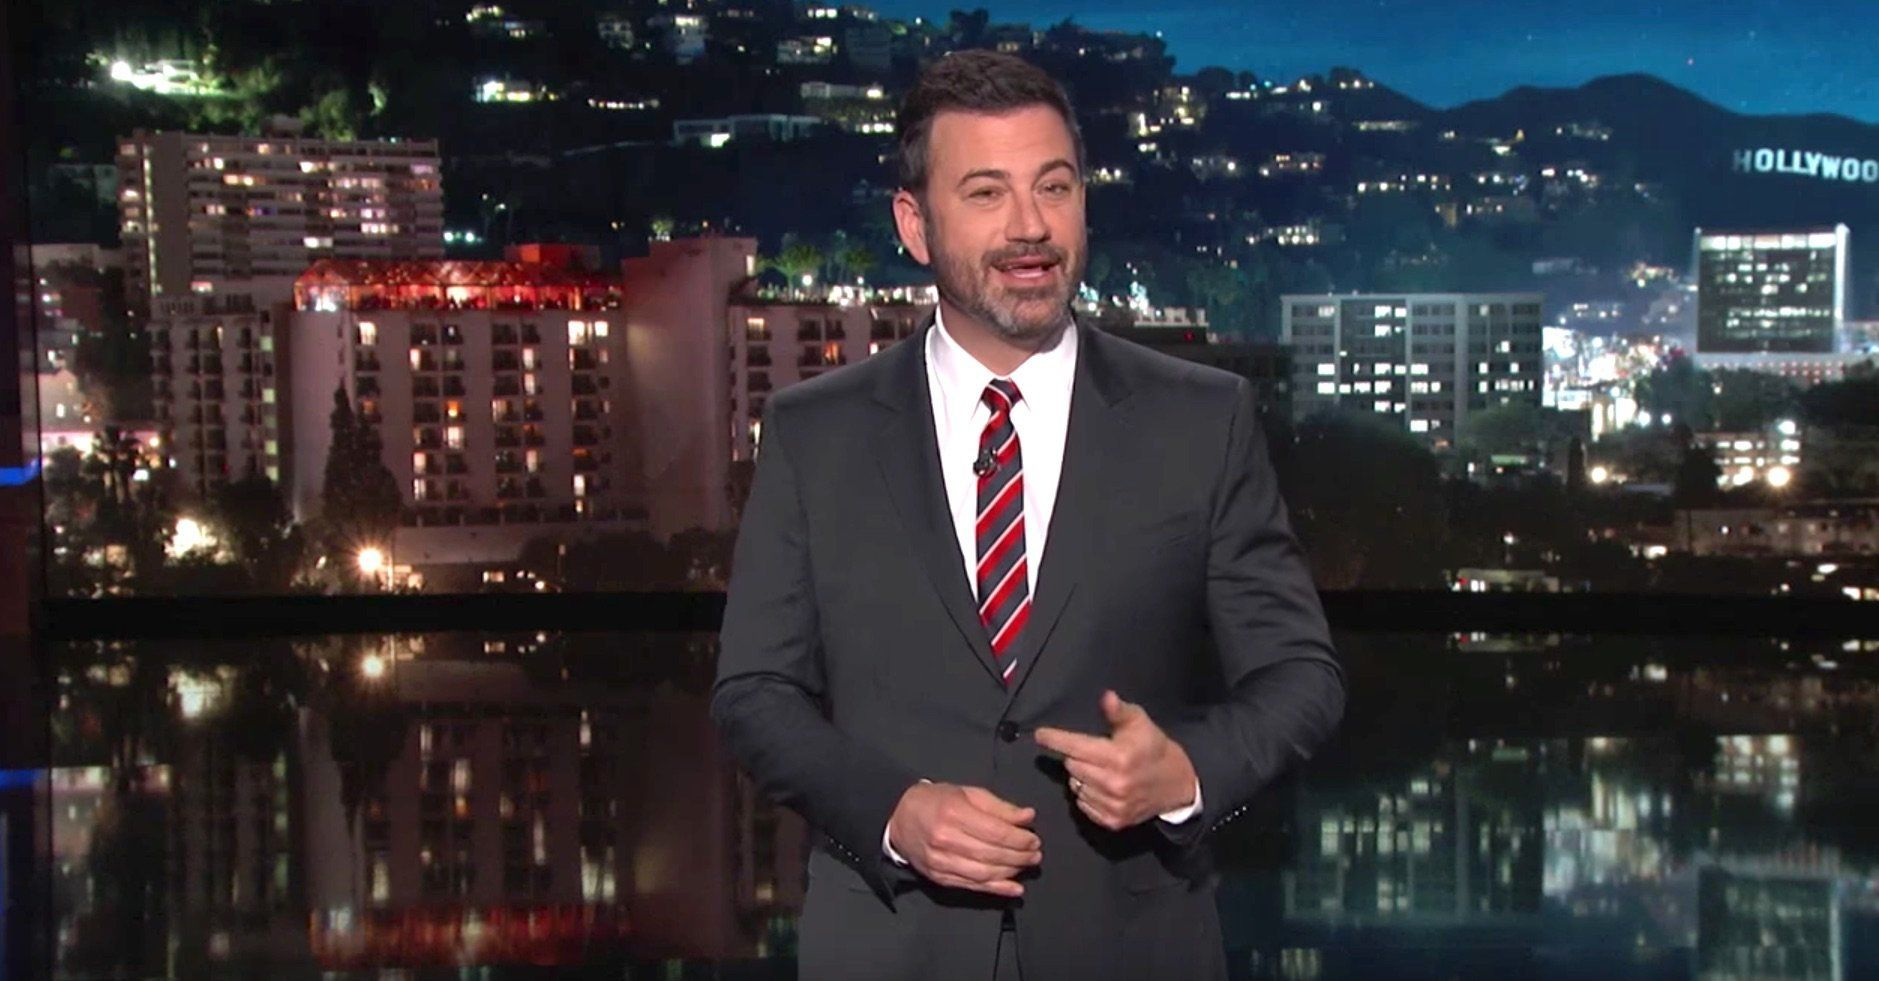 Kimmel Brings Down The House By Giving Trump's Latest Tweet A New